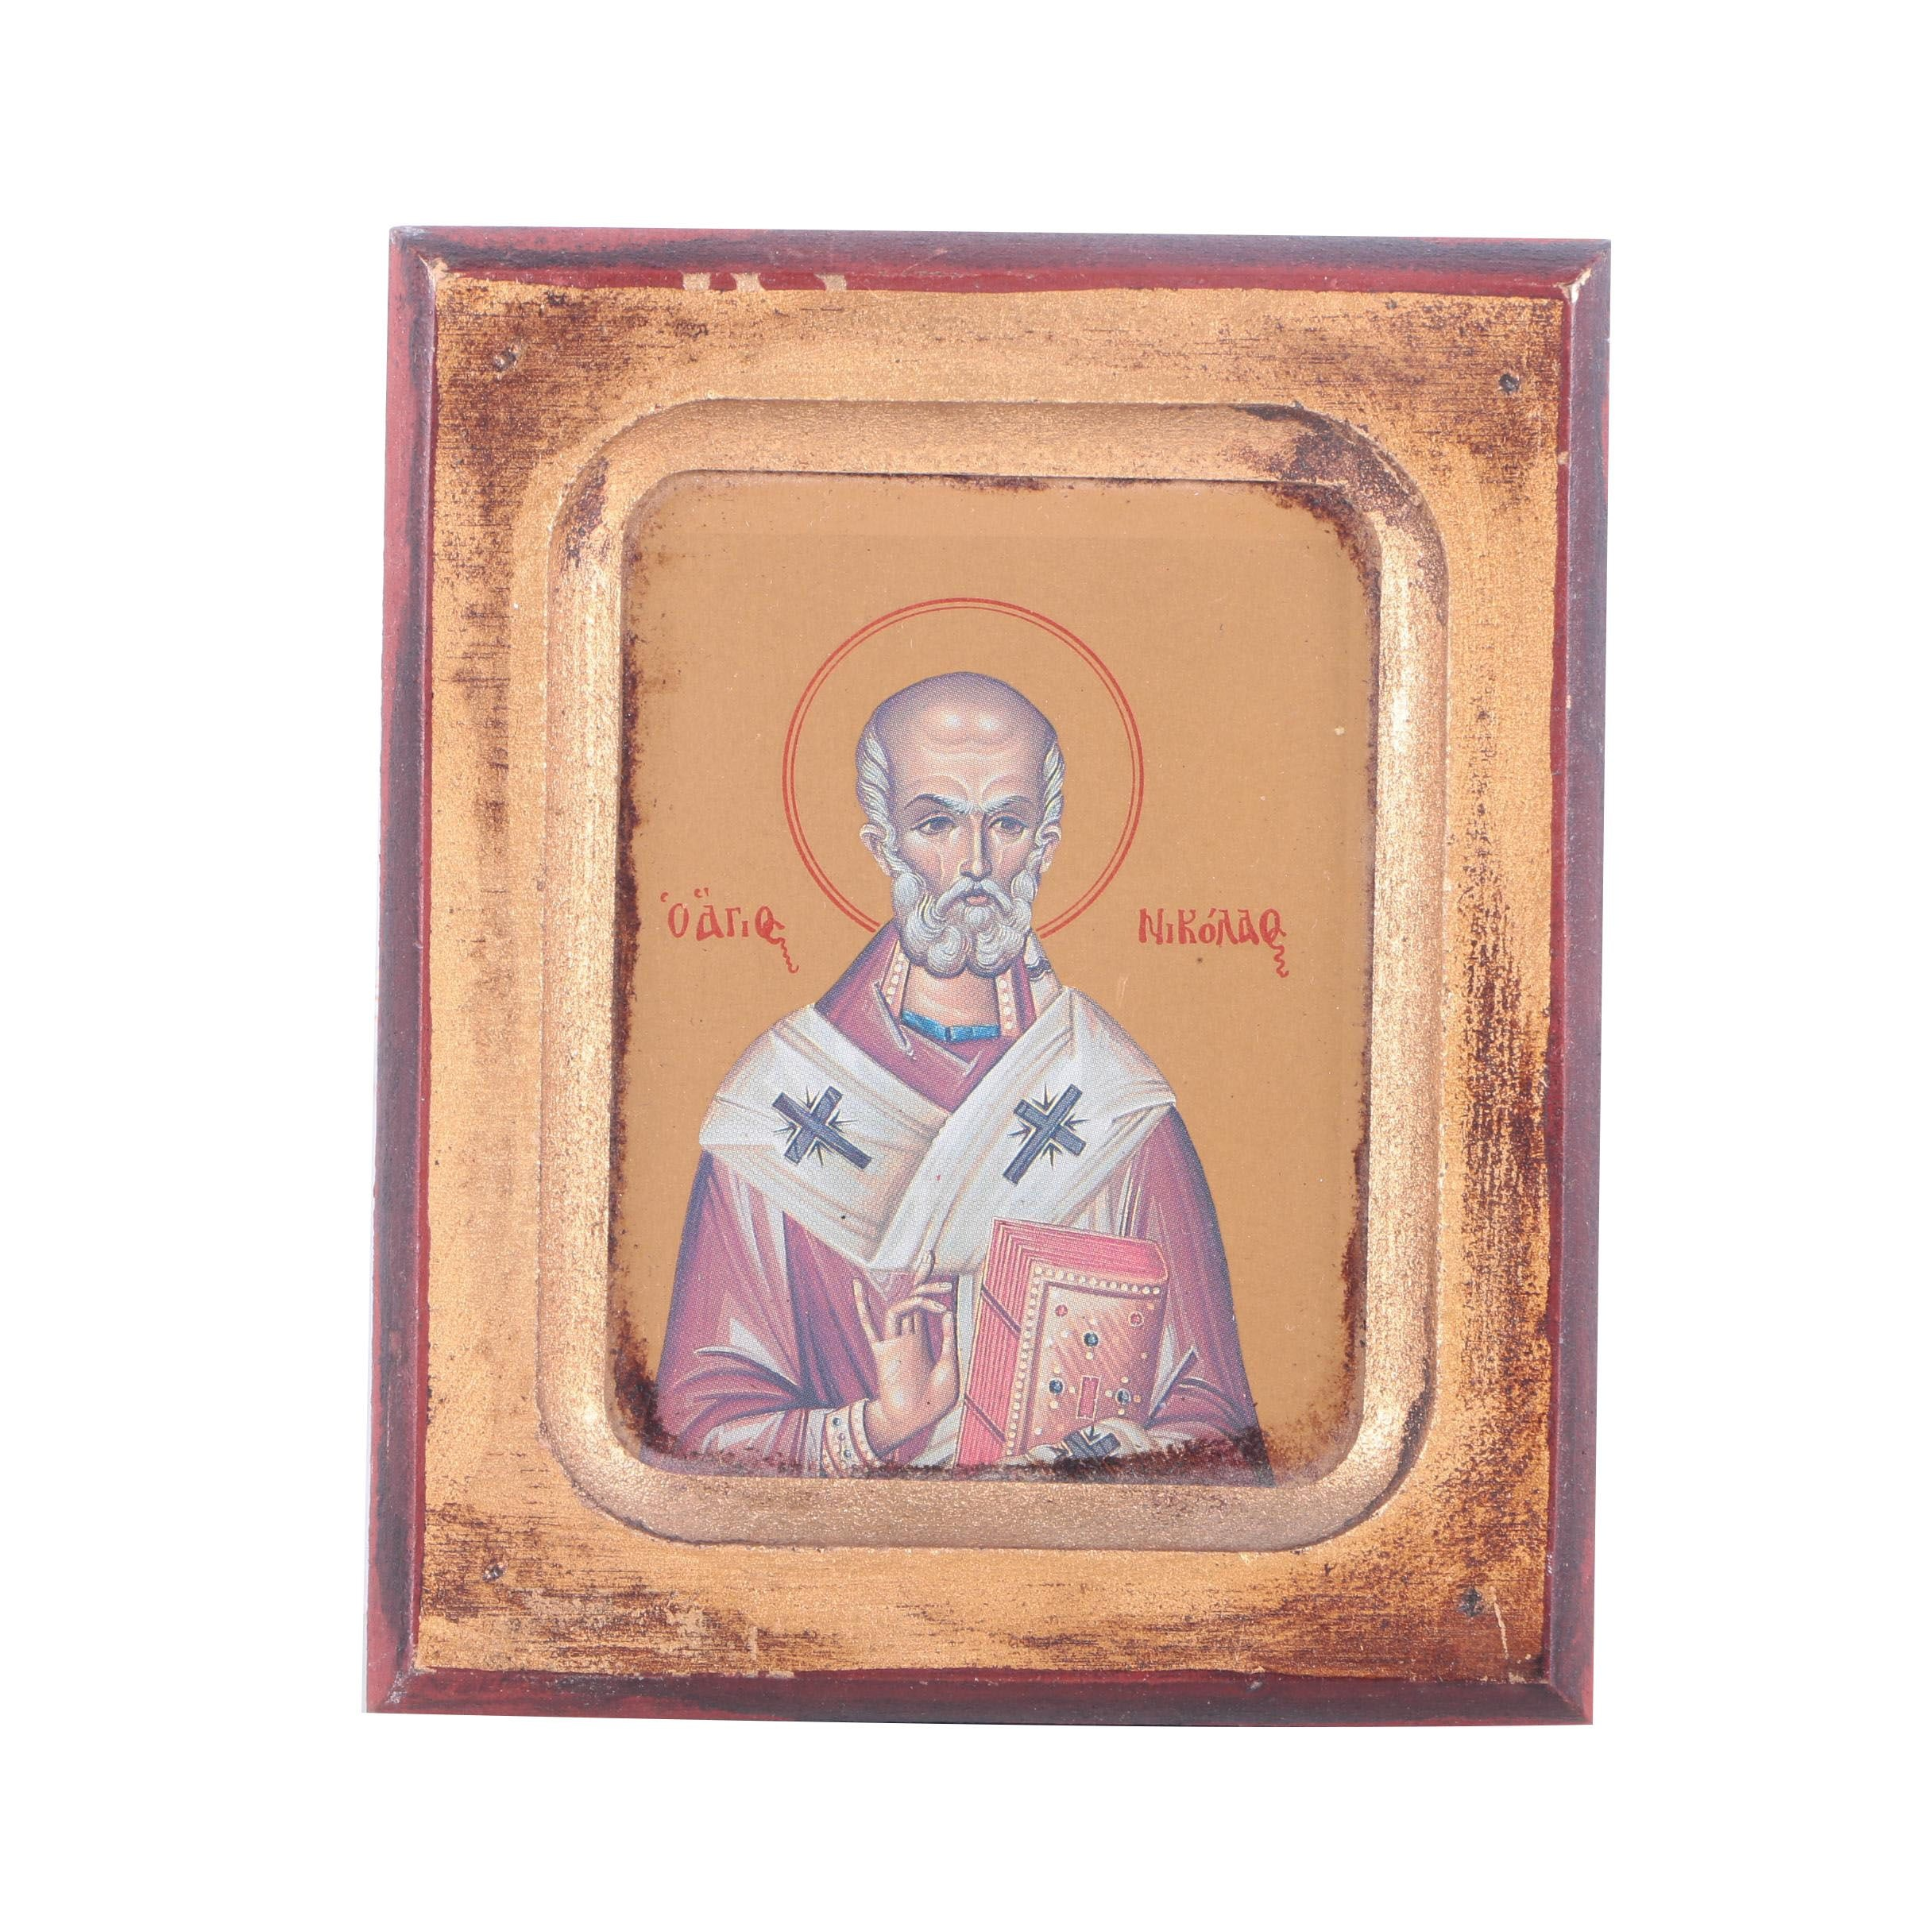 Offset Lithograph on Paper of a Byzantine Icon of St. Nicholas